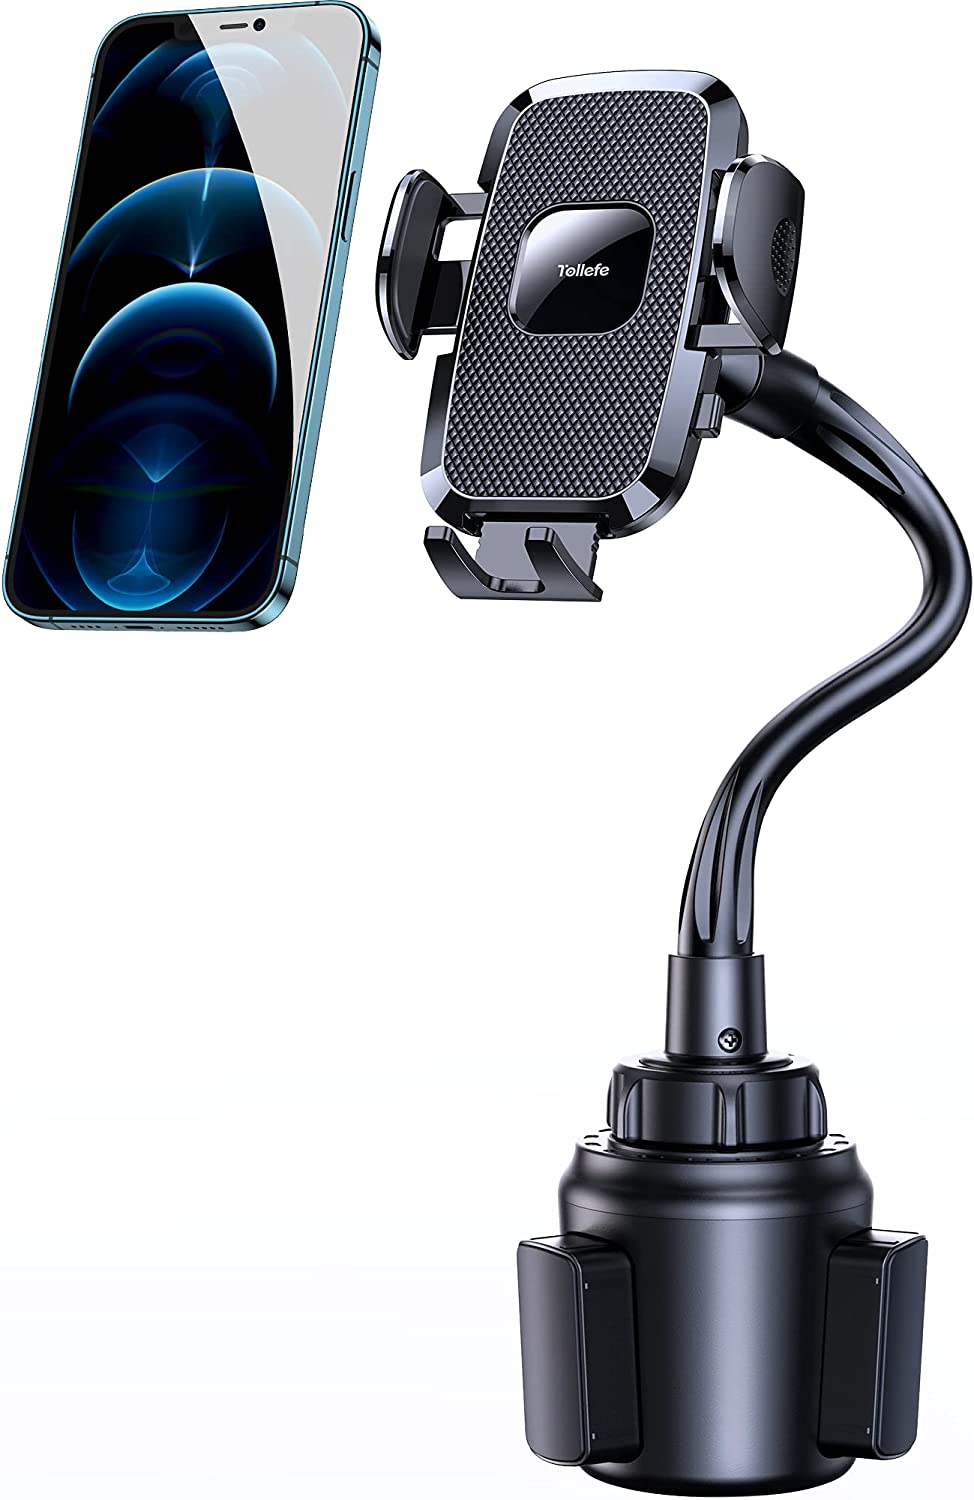 Cup Phone Holder for Car, Tollefe Car Phone Cup Mount, Adjustable Gooseneck Cup Cell Phone Mount Compatible with iPhone 12 Pro Max/XR/XS/11/8 Plus/Samsung/Google Pixel, Fit for F150 Universal Pickup